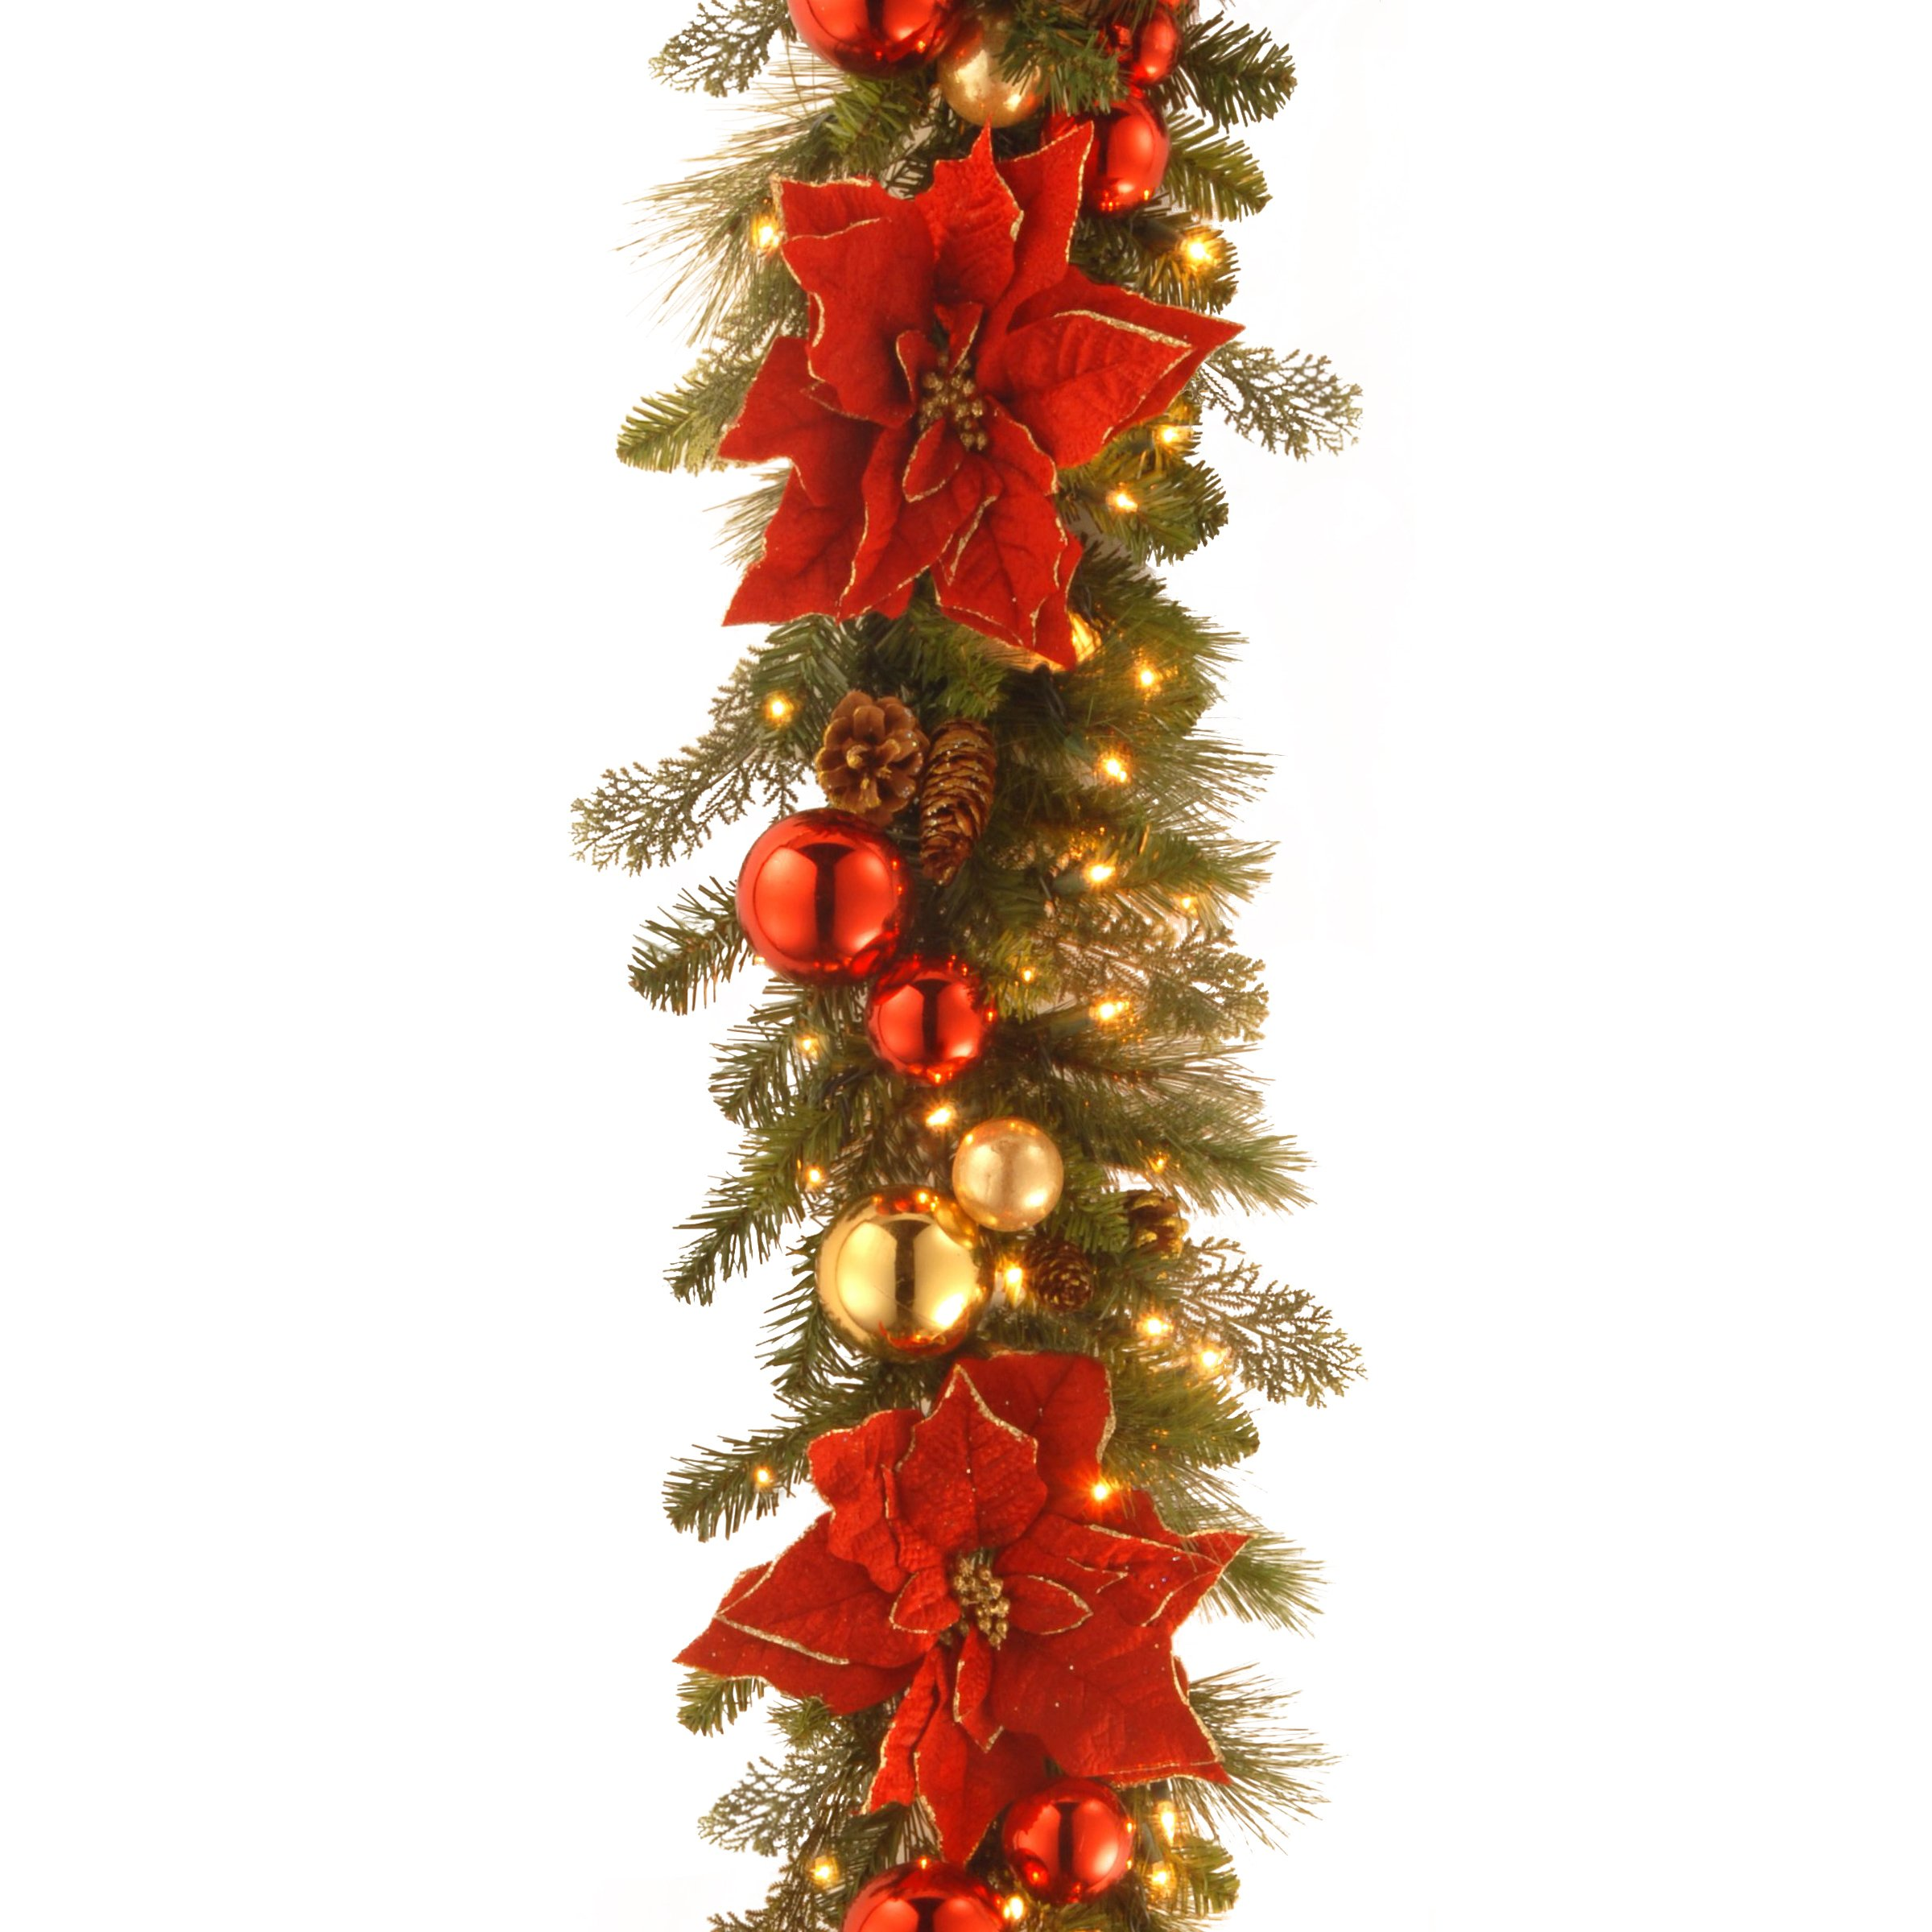 National Tree 9 Foot by 12 Inch Decorative Collection Home for the Holidays Garland with Ball Ornaments, Poinsettia Flowers, Cones and 100 Clear Lights (DC13-110L-9B-1)